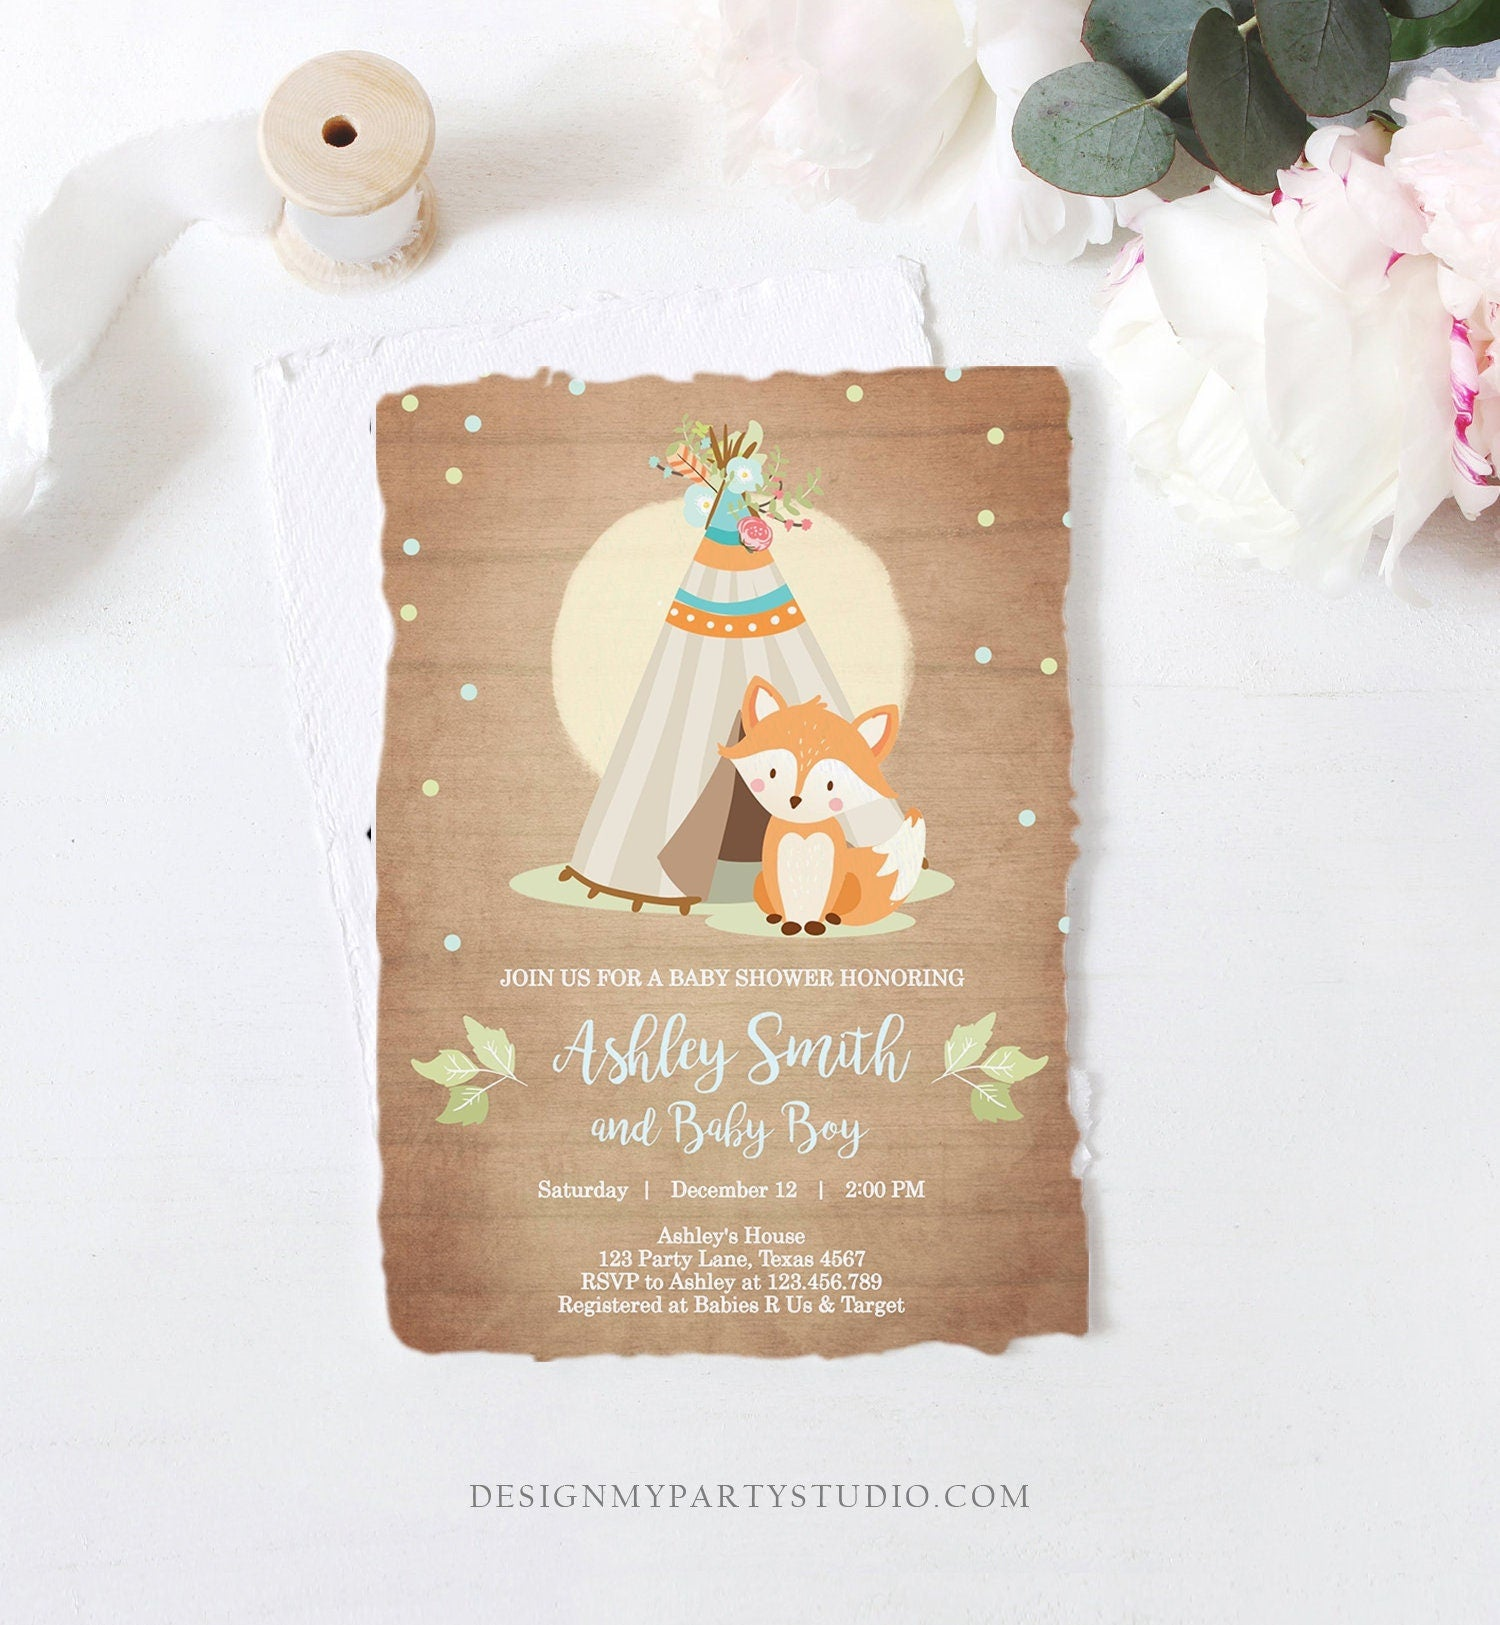 Editable Fox Baby Shower Invitation Woodland Teepee Boho Tribal Boy Baby Shower Blue Wood Download Printable Template Corjl Digital 0052